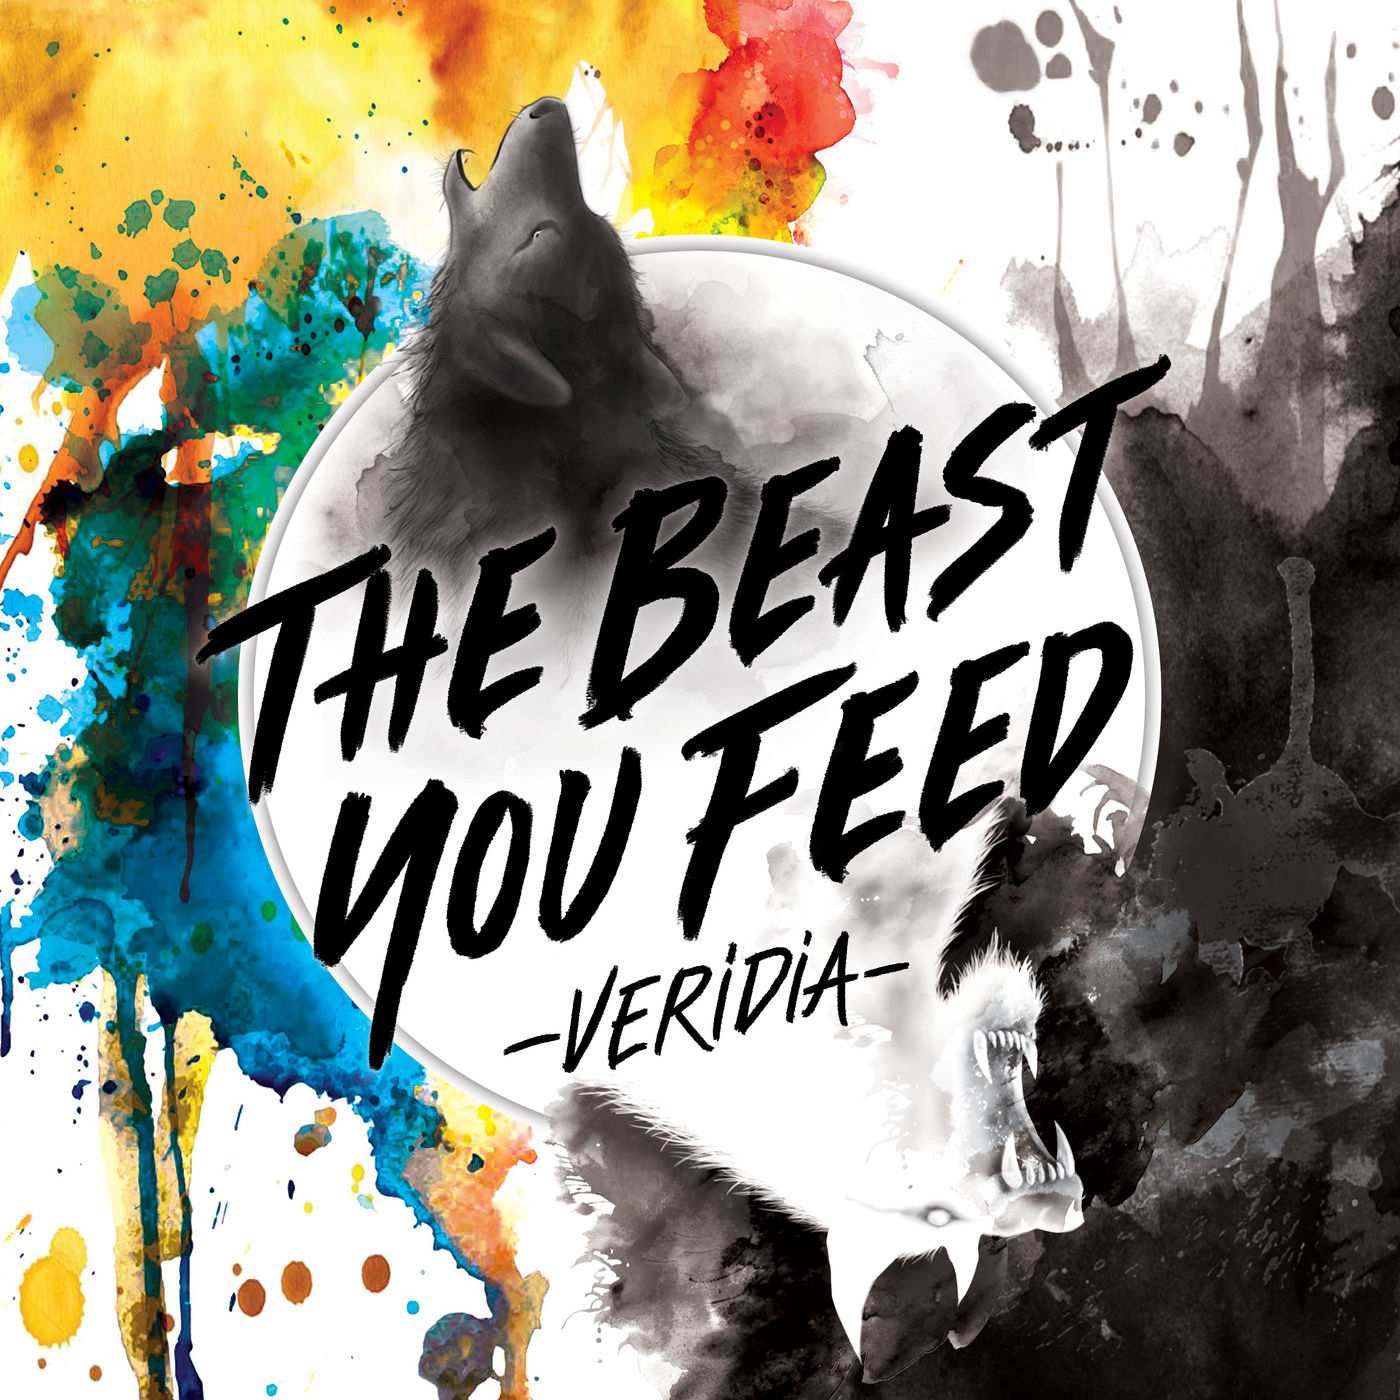 Veridia - The Beast You Feed (2018)